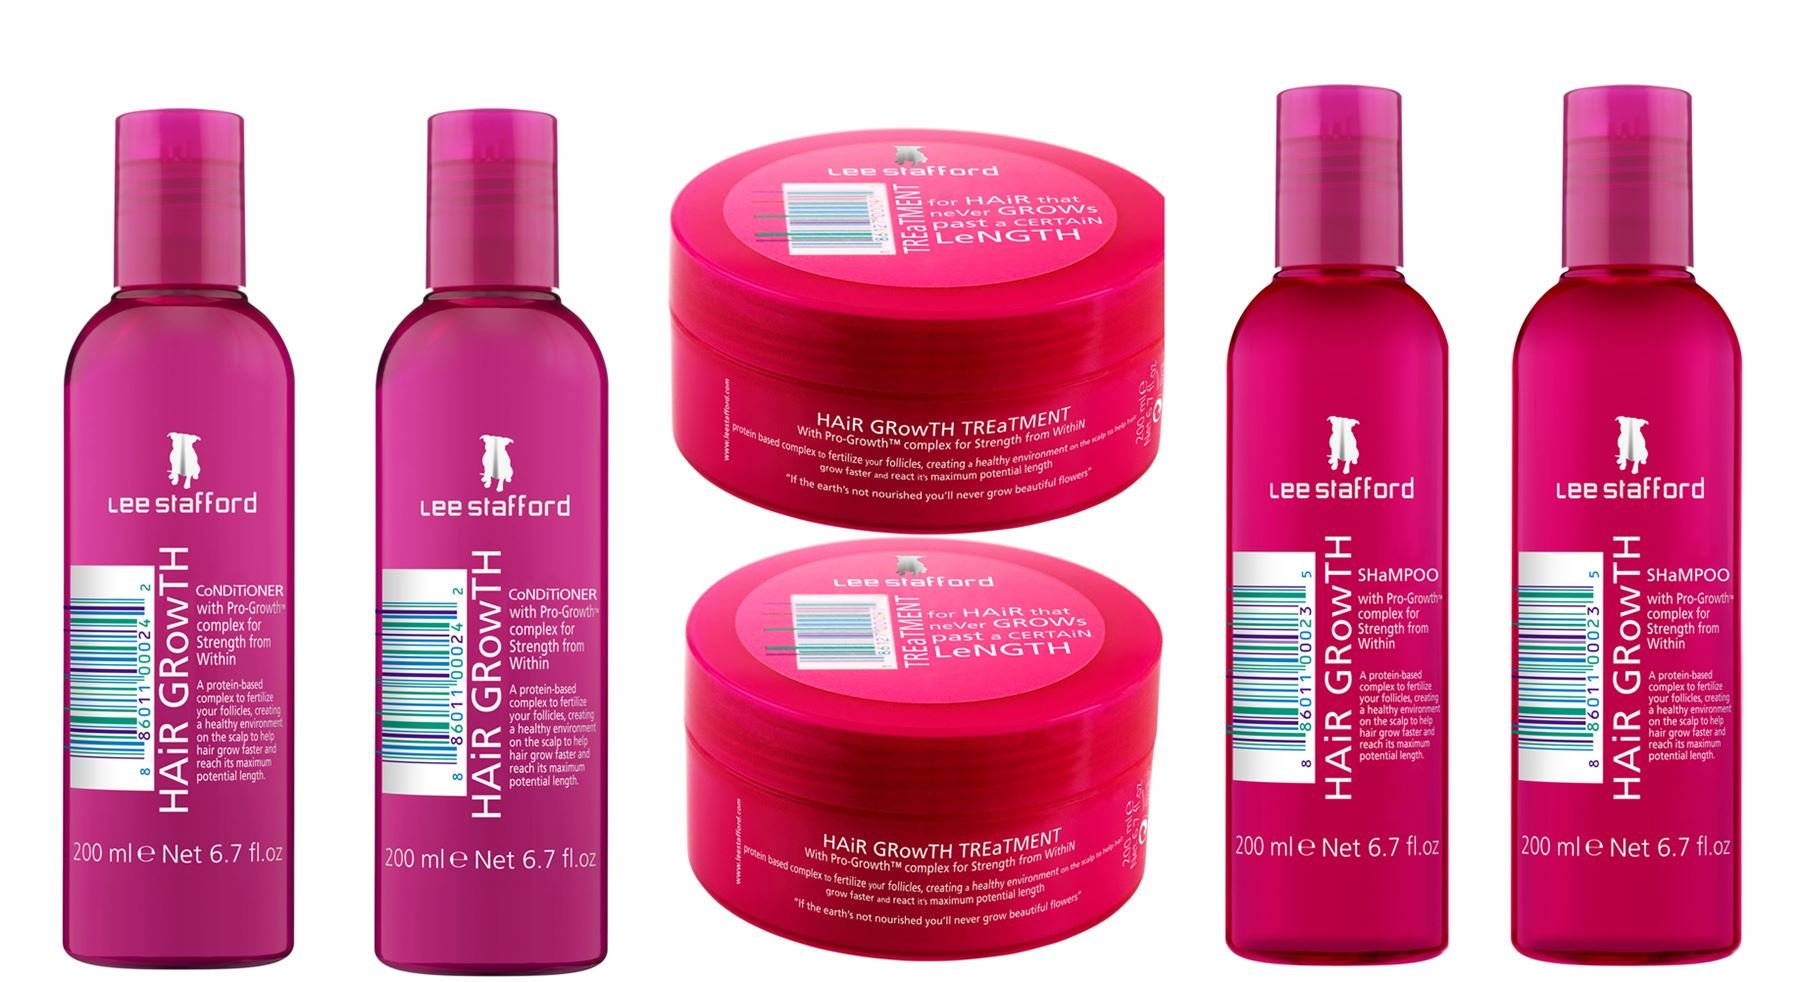 Lee Stafford Hair Growth Treatment x 2, Shampoo x 2 & Conditioner x 2 Bundle